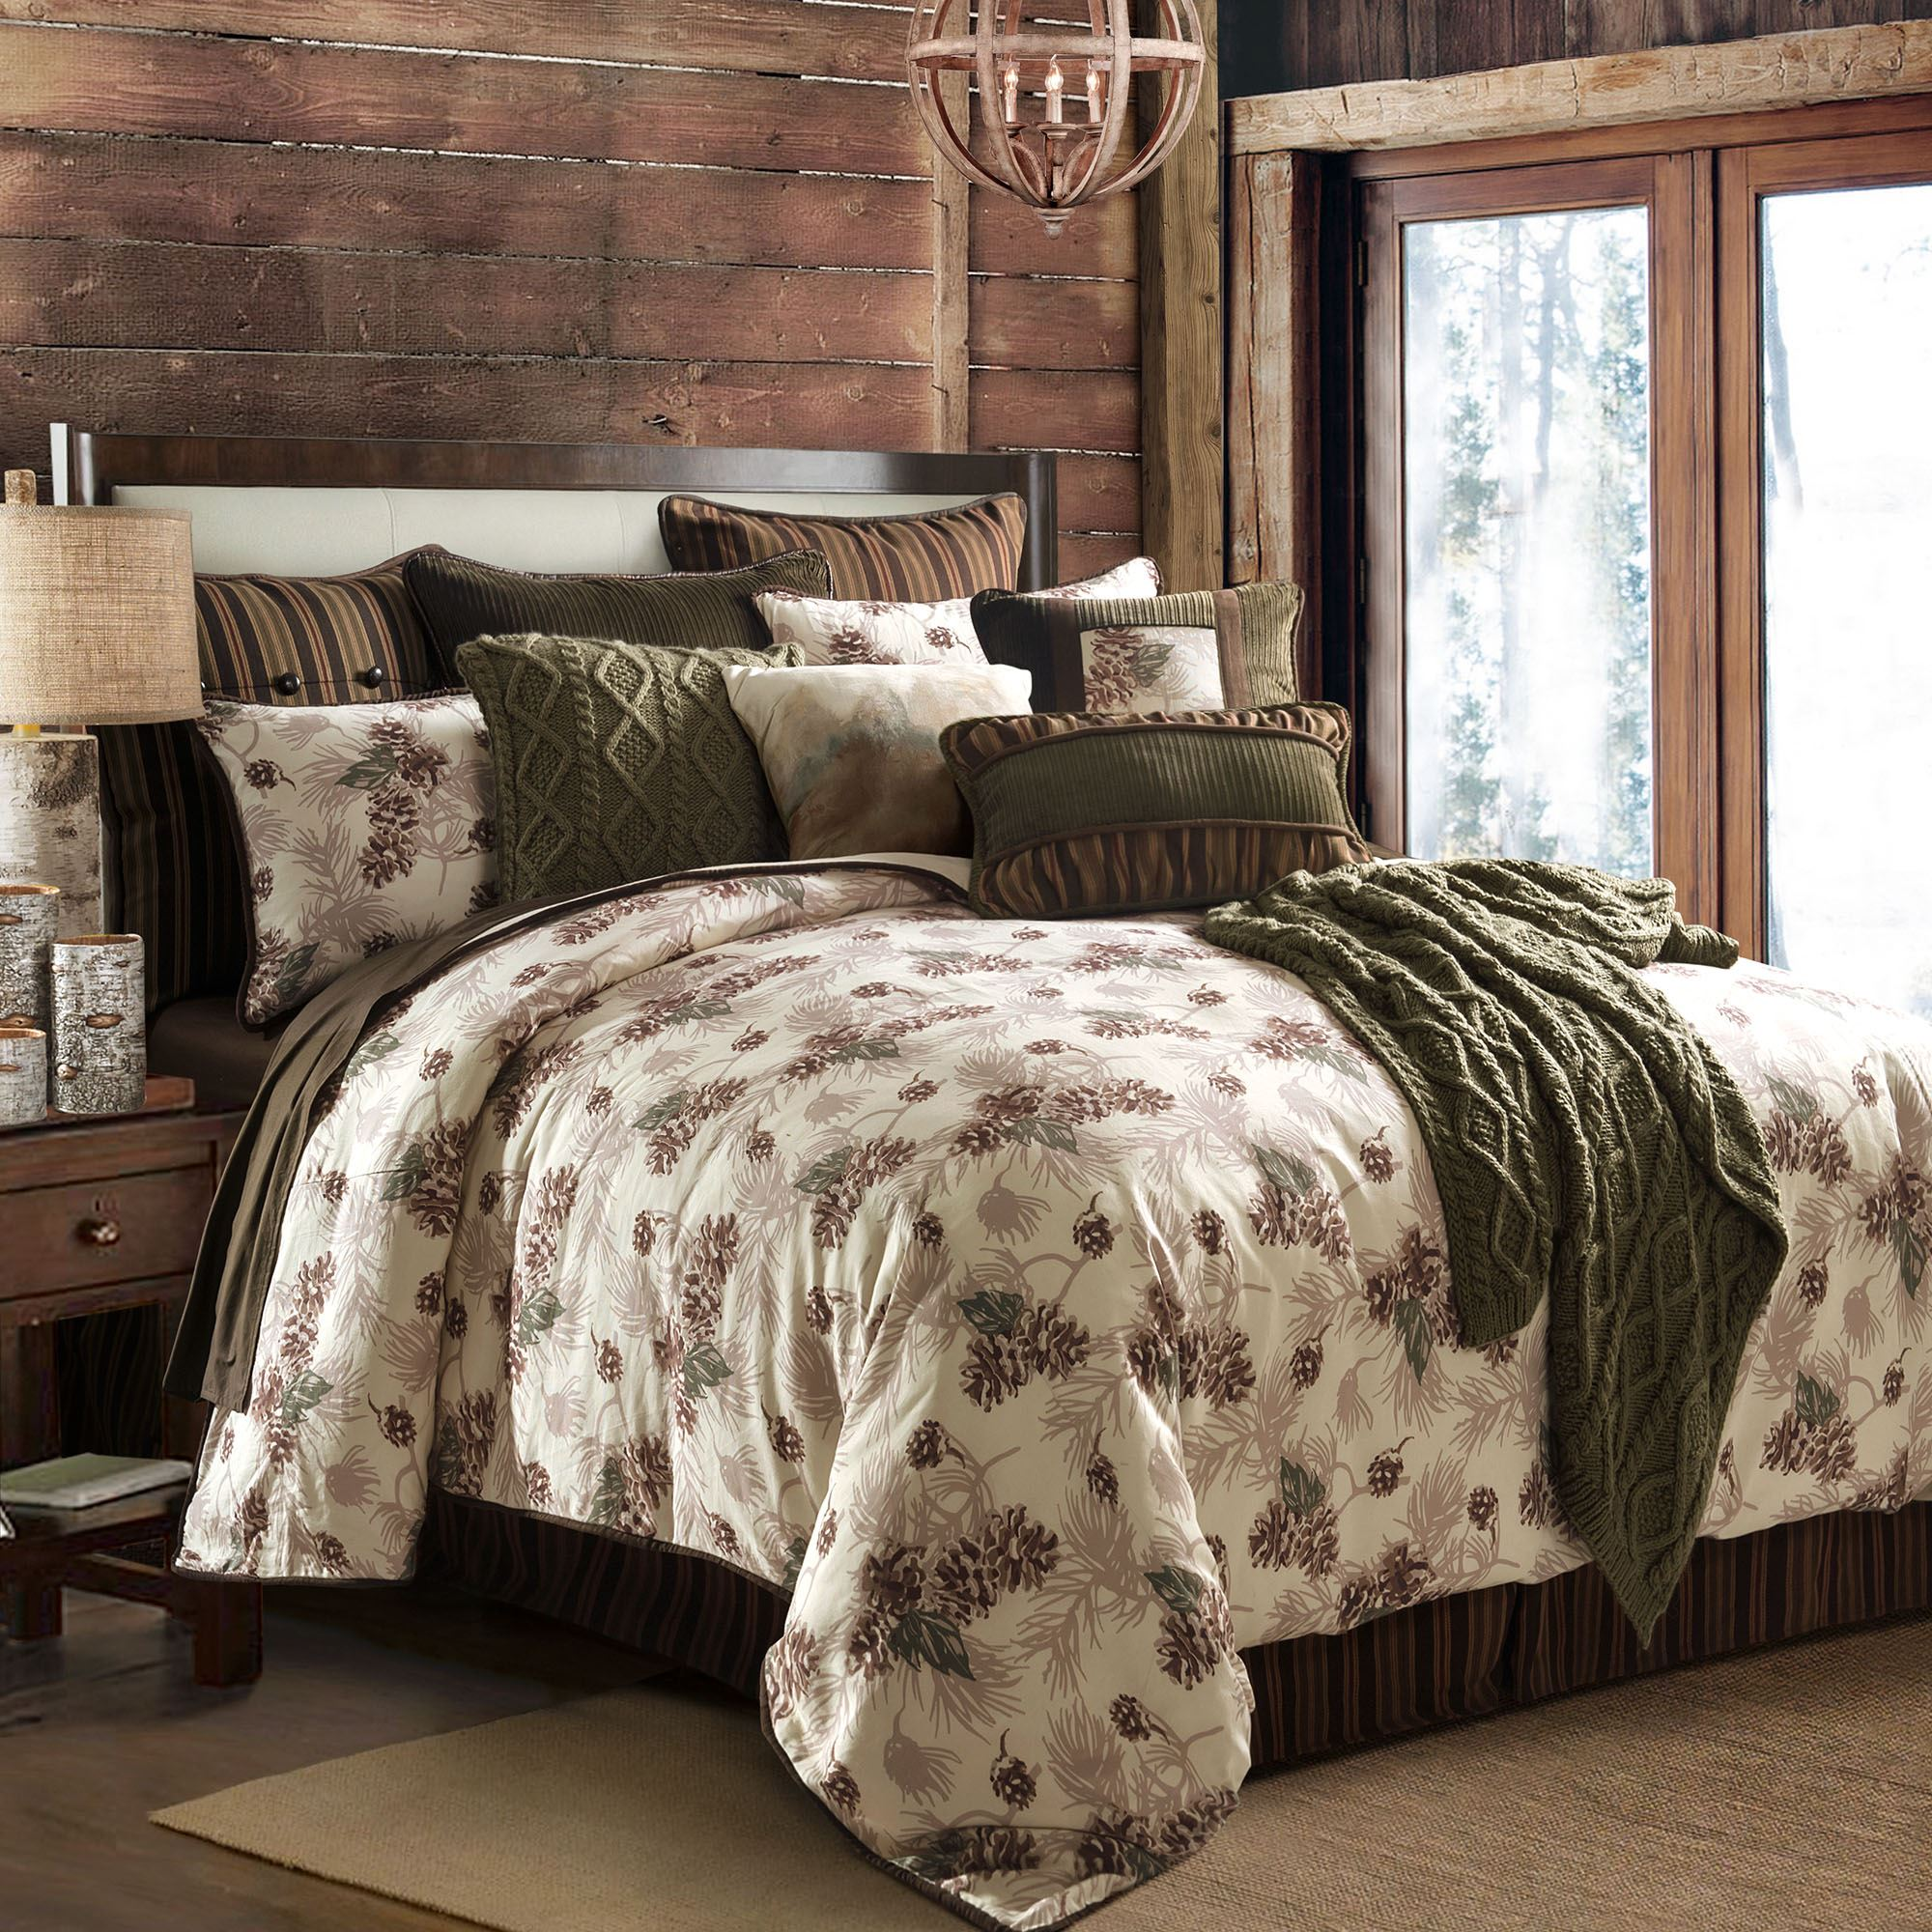 unlimited bedding plaid cabin kimlor ducks du lodge rustic comforter sets mills